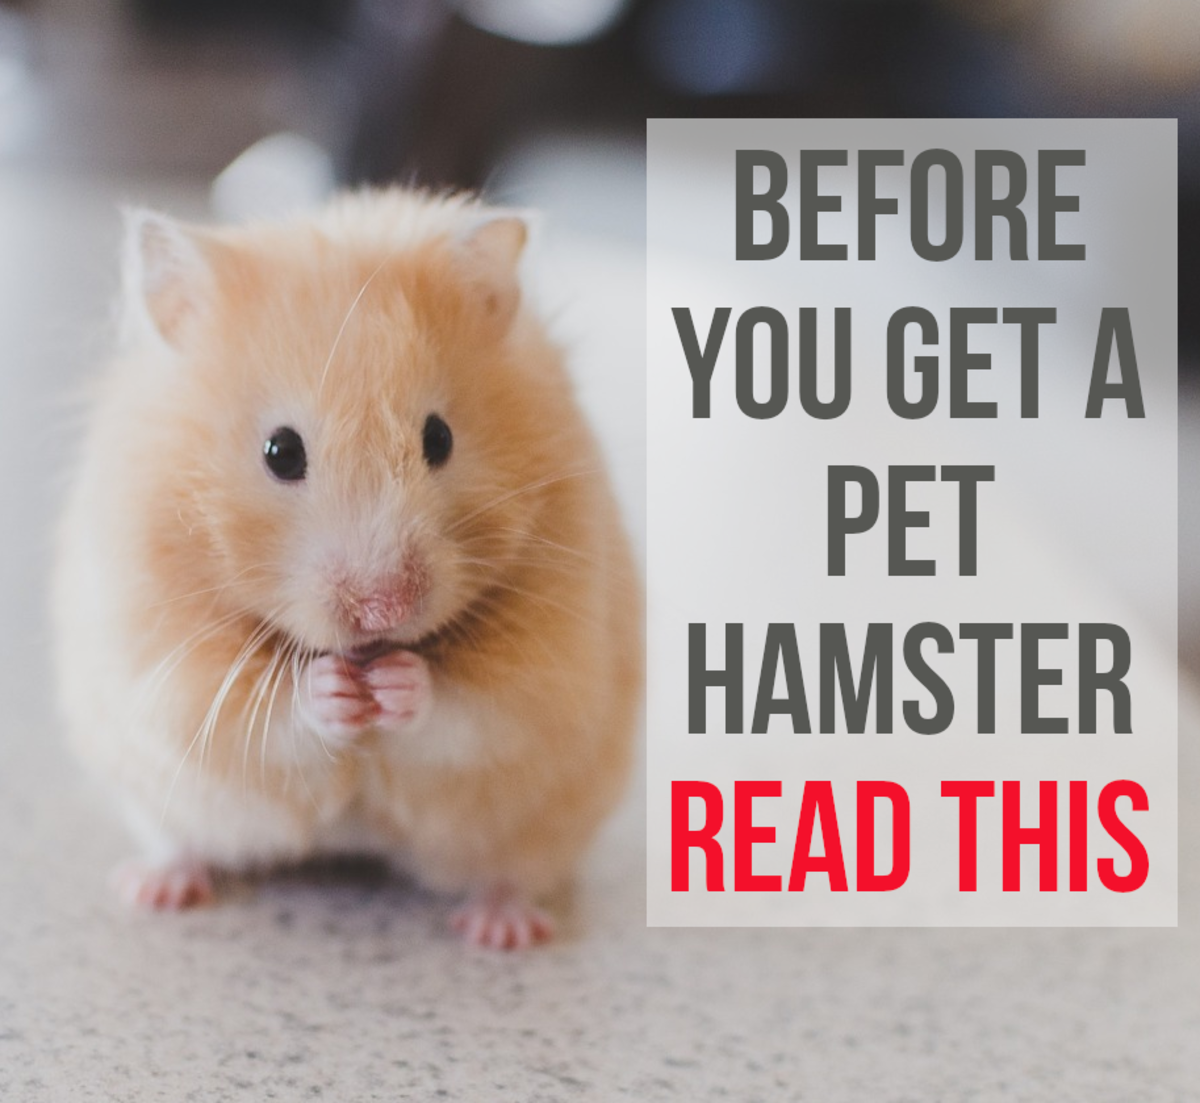 5 Reasons Not to Get a Pet Hamster